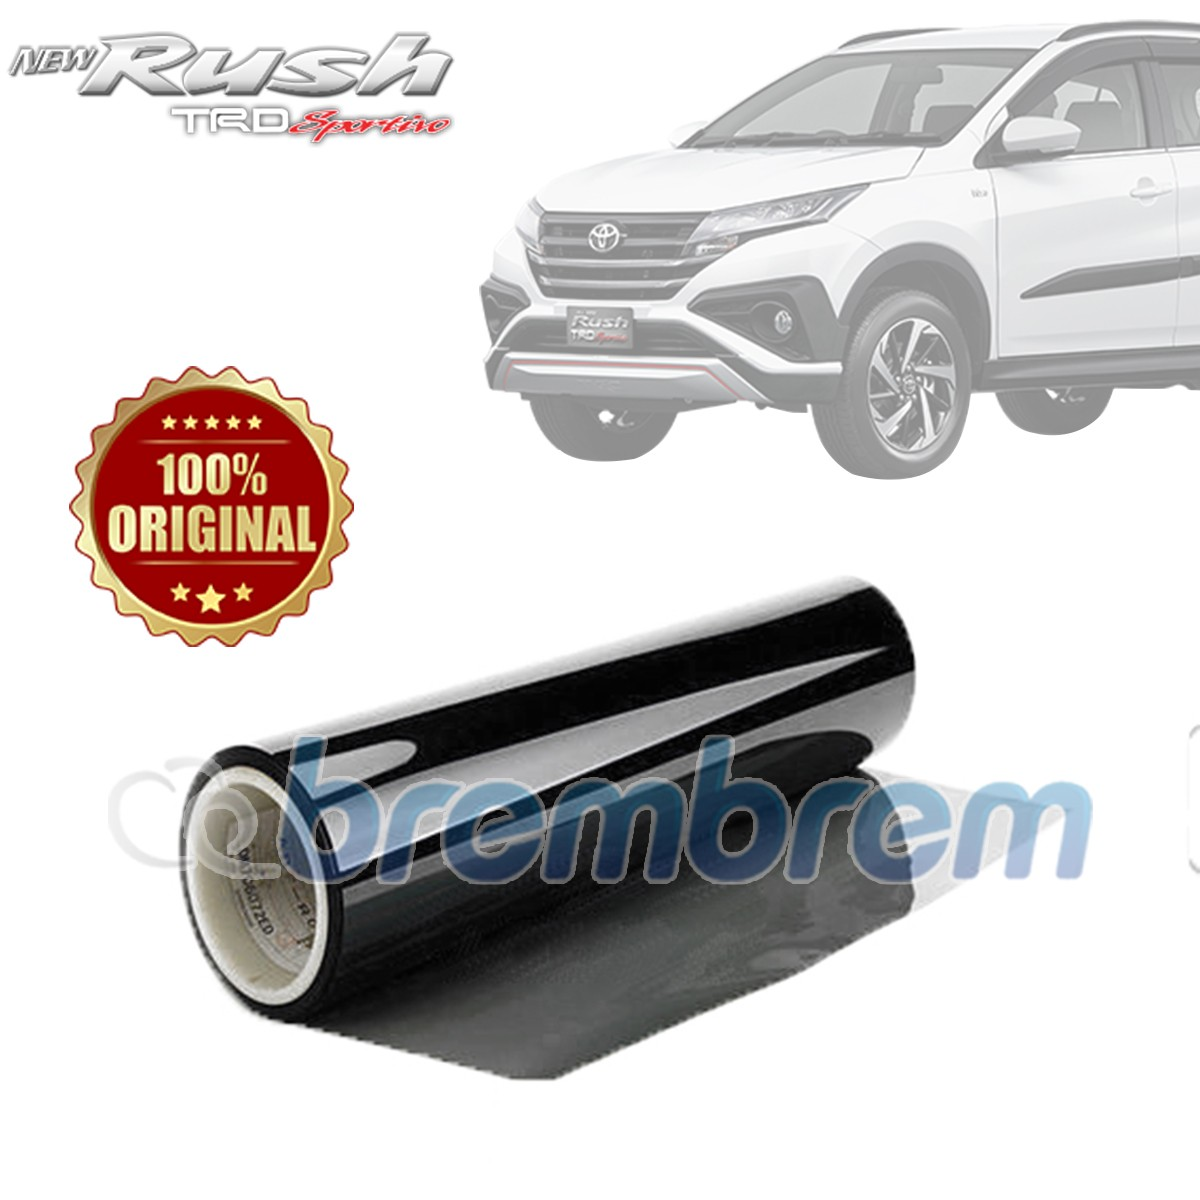 KACA FILM 3M KOMBINASI CRYSTALLINE + BLACK BEAUTY (TOYOTA ALL NEW RUSH) FULL KACA